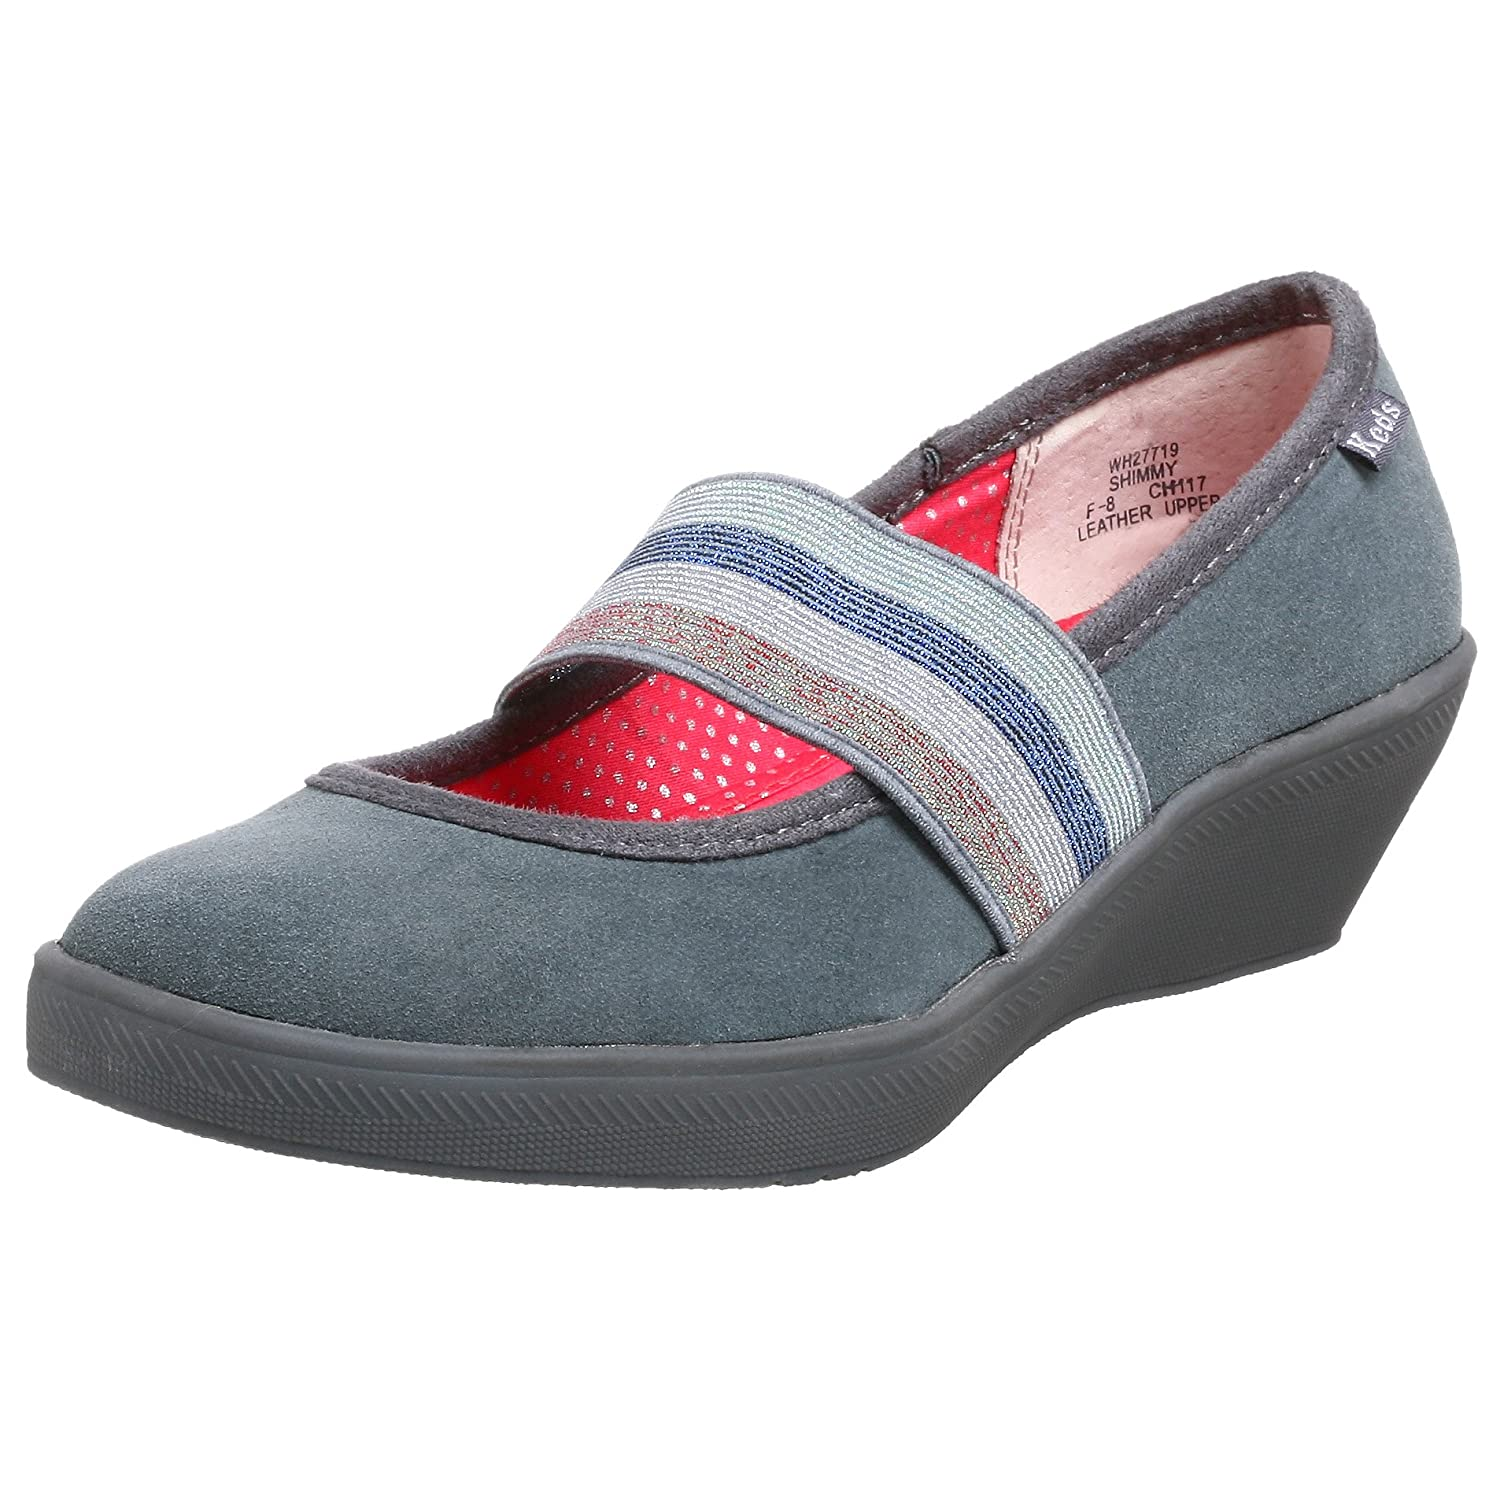 Keds Women's Shimmy Wedge - Free Overnight Shipping & Return Shipping: Endless.com from endless.com